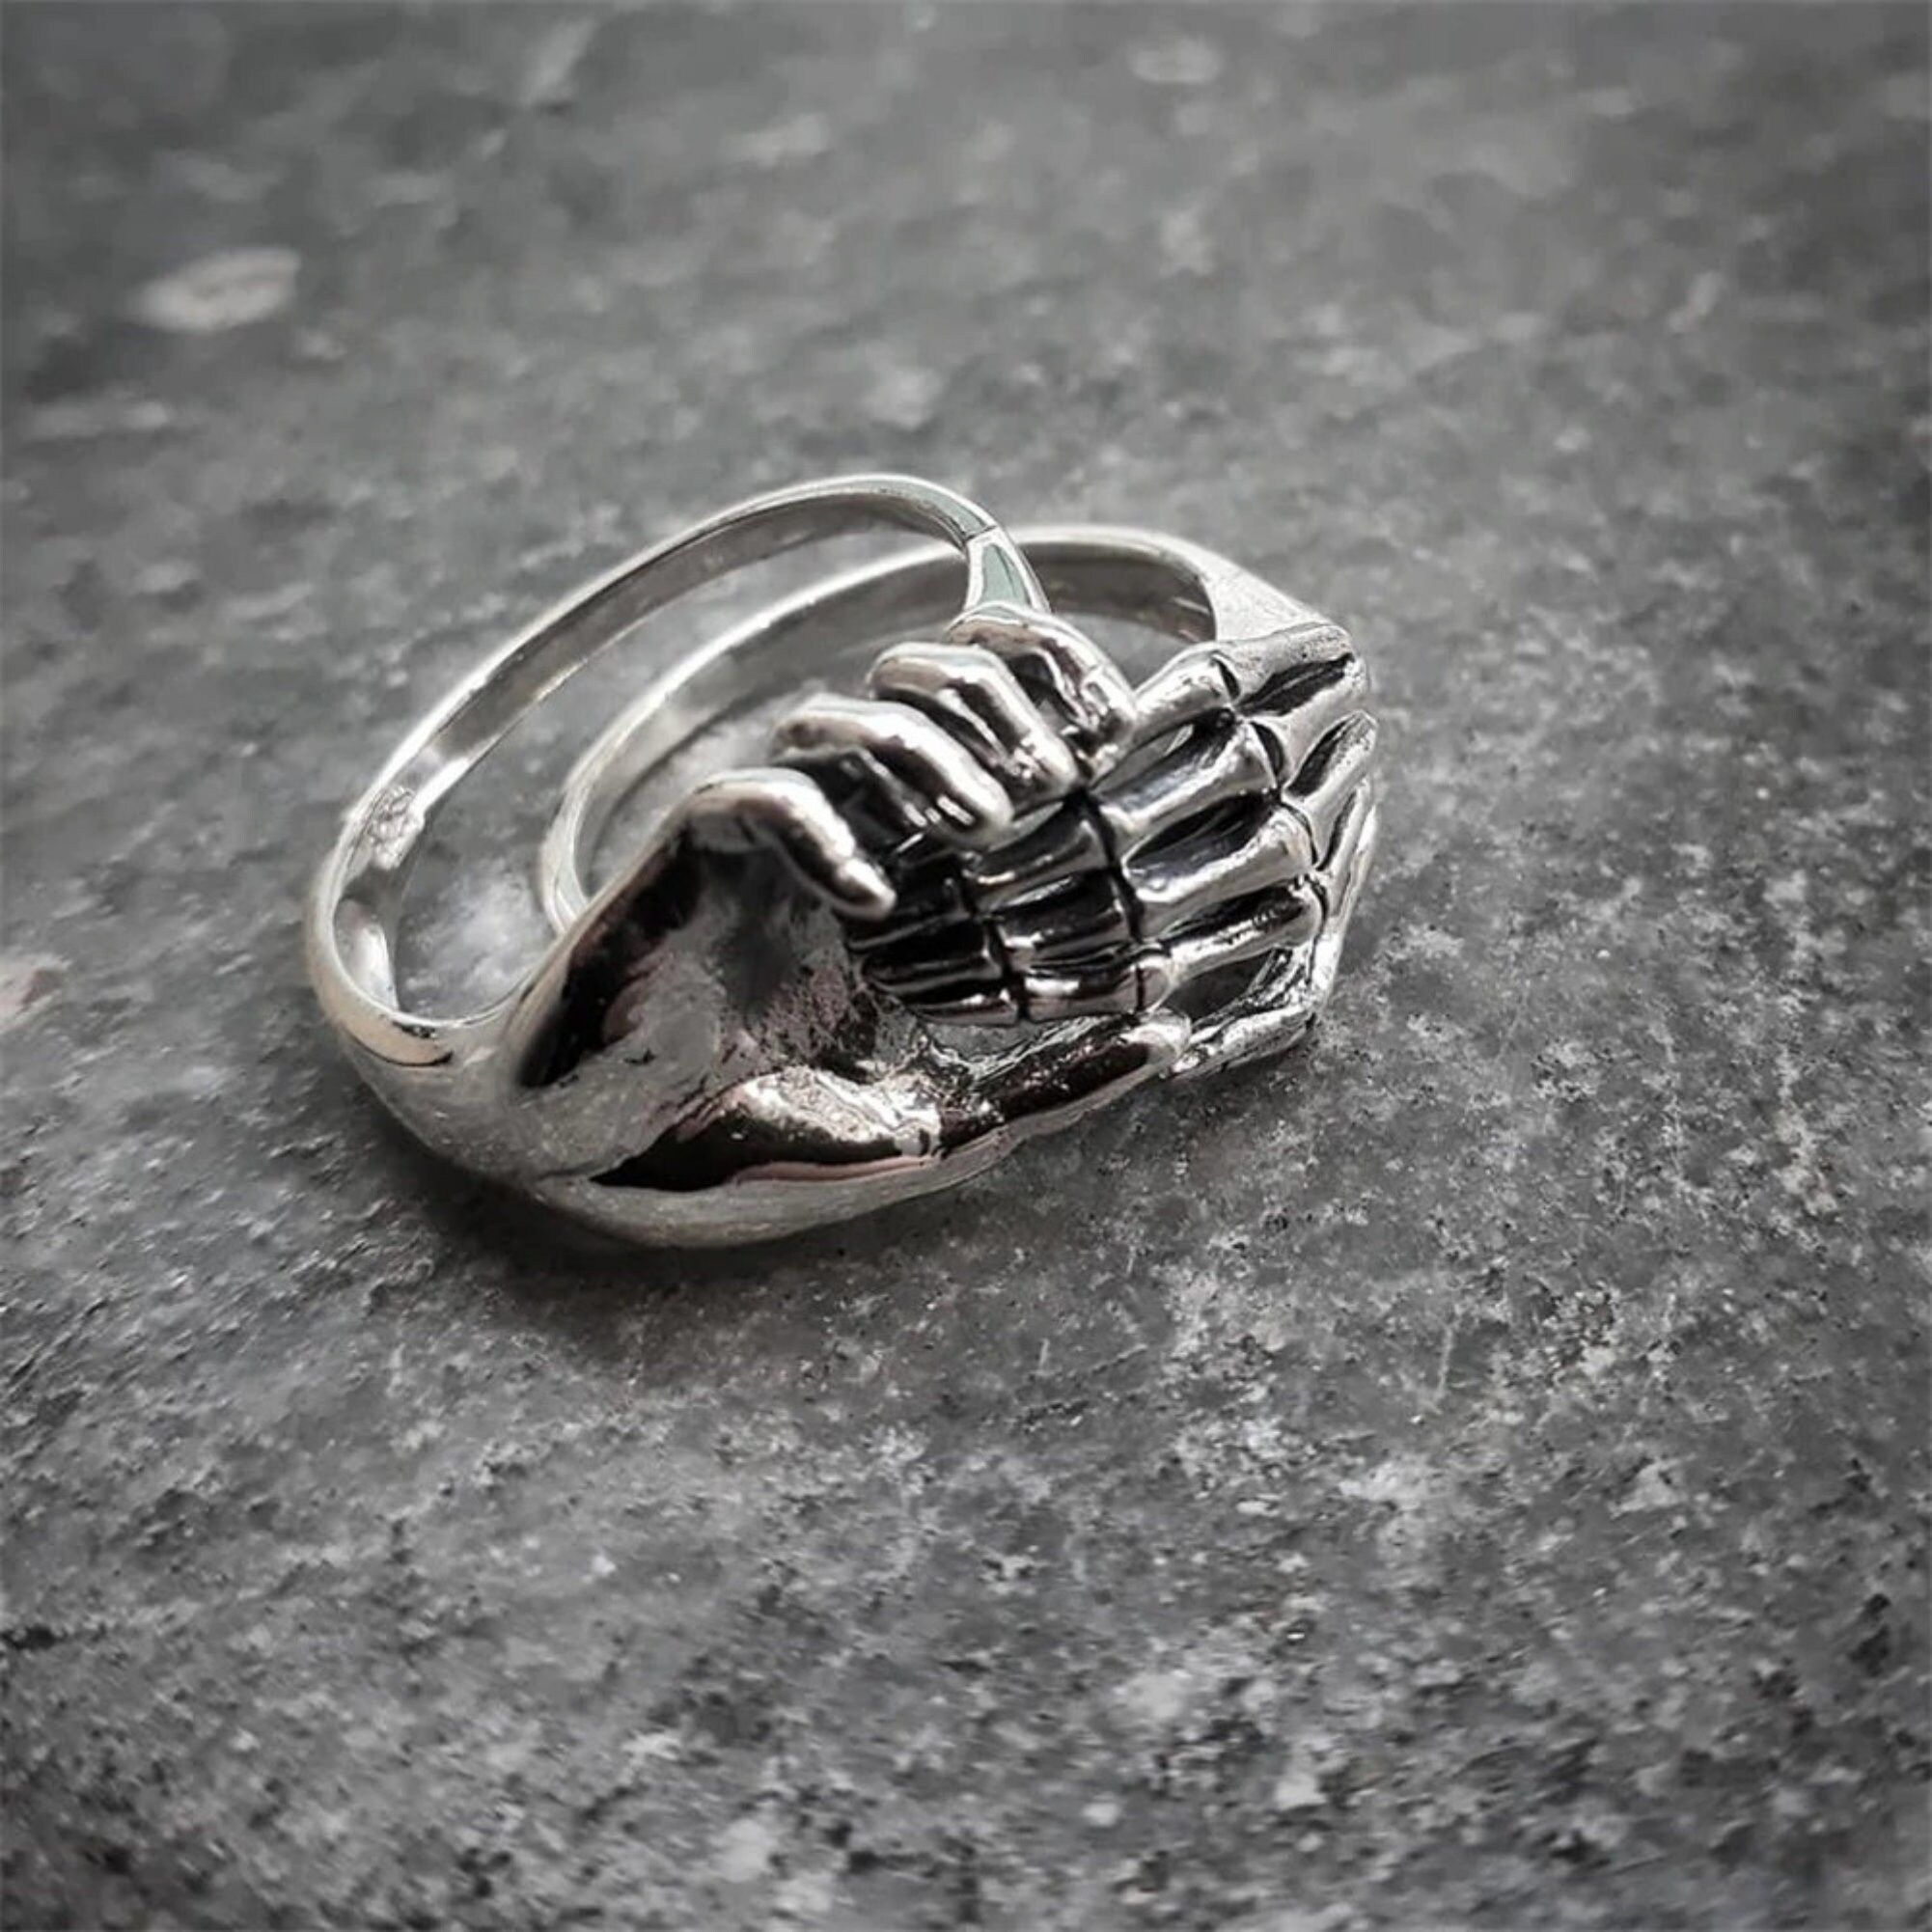 Handmade item Materials: 316L Stainless Steel Color: Silver - Antique Rustic Finish Ring Size: Available in US Size 7 to 14 Please note: All weights and sizes are approximate. VALUES OF VIKING SYMBOLS Viking Symbols took an essential part in Norse culture. Some of them were used to bring ENERGY and FAITH, while the others were used to call on their gods for protection or even for instilling fear in their enemies. Although today we consider Vikings' symbols only Norse mythology, it should be note